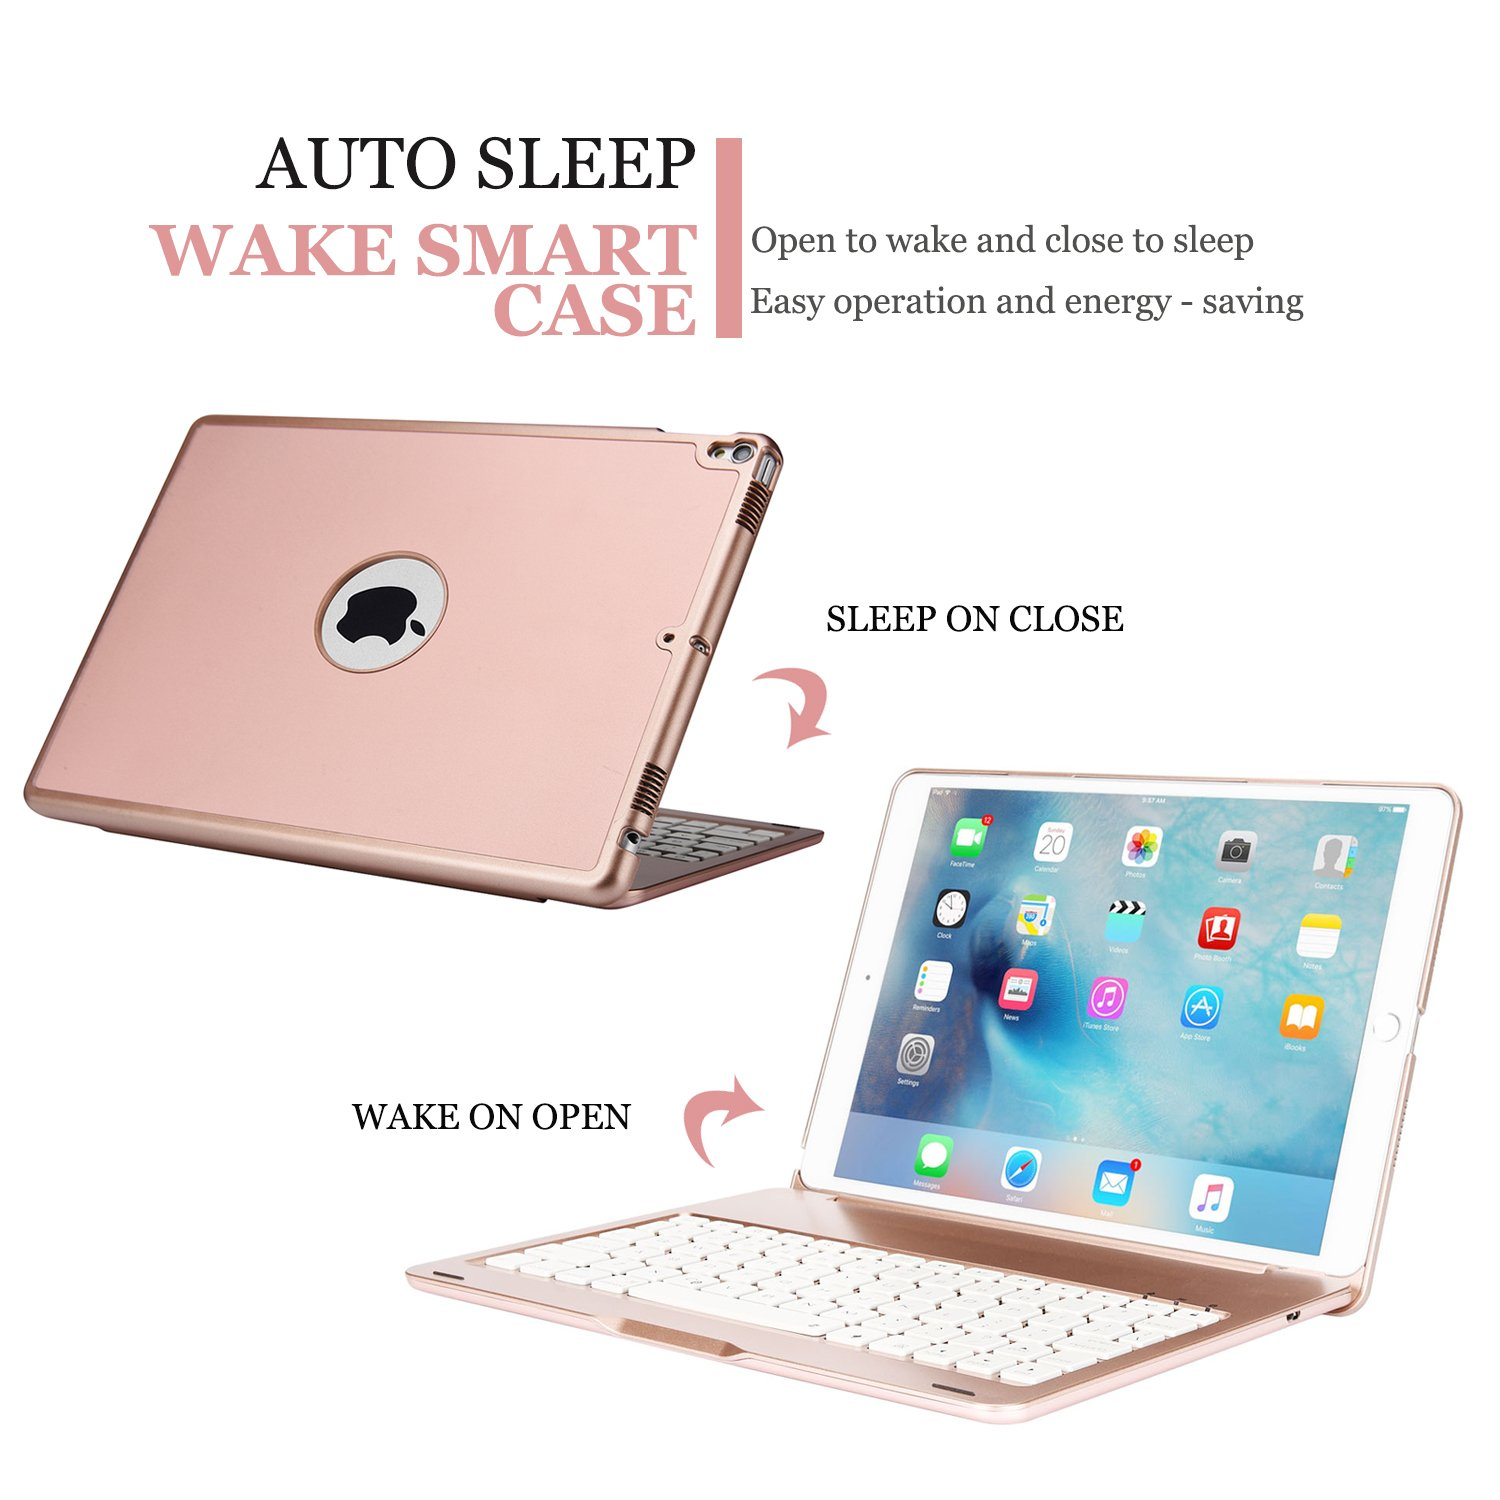 ONHI Bluetooth Wireless Keyboard Case for iPad Pro 10.5 Keyboard Case Aluminum Shell Smart Folio Case with 7 Colors Back-lit, Auto Sleep/Wake,Silent Typing (A1701/A1709)(Rose Gold) by ONHI (Image #3)